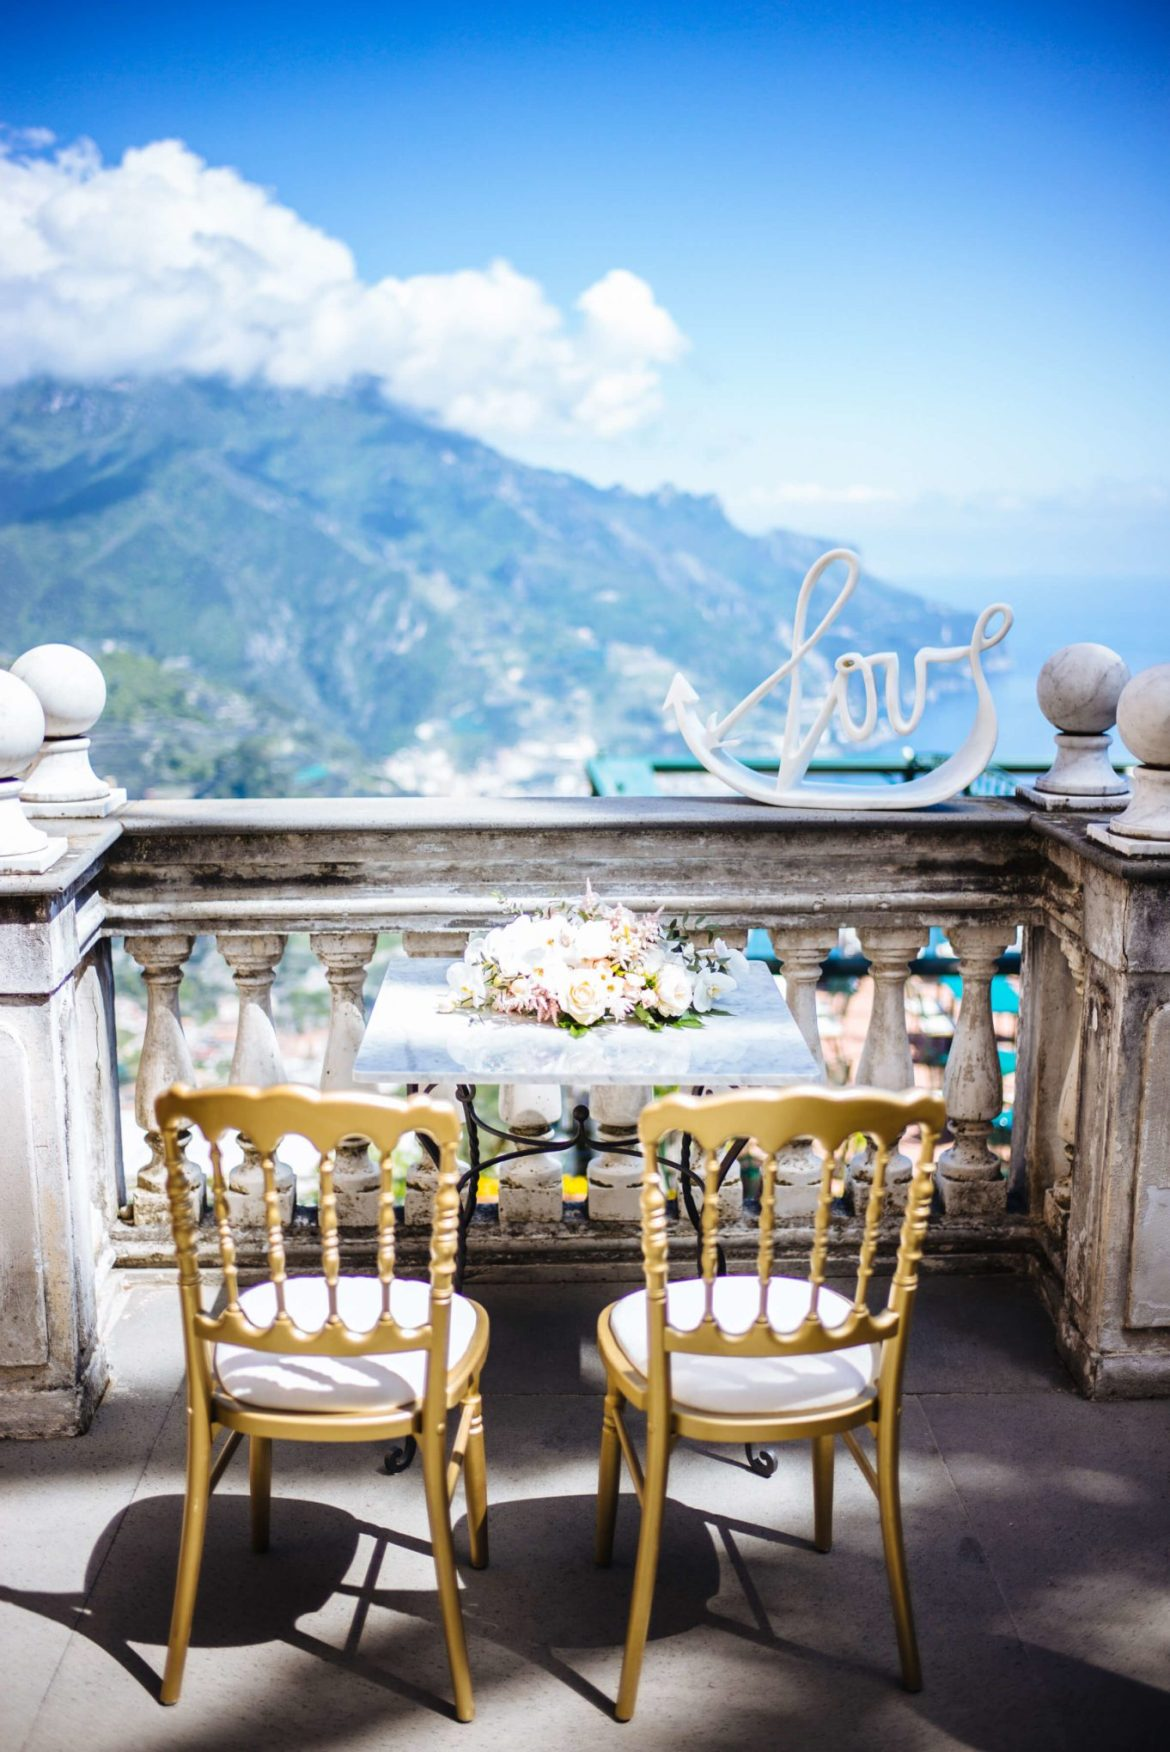 Overlooking the view from Palazzo Avino, the taste edit